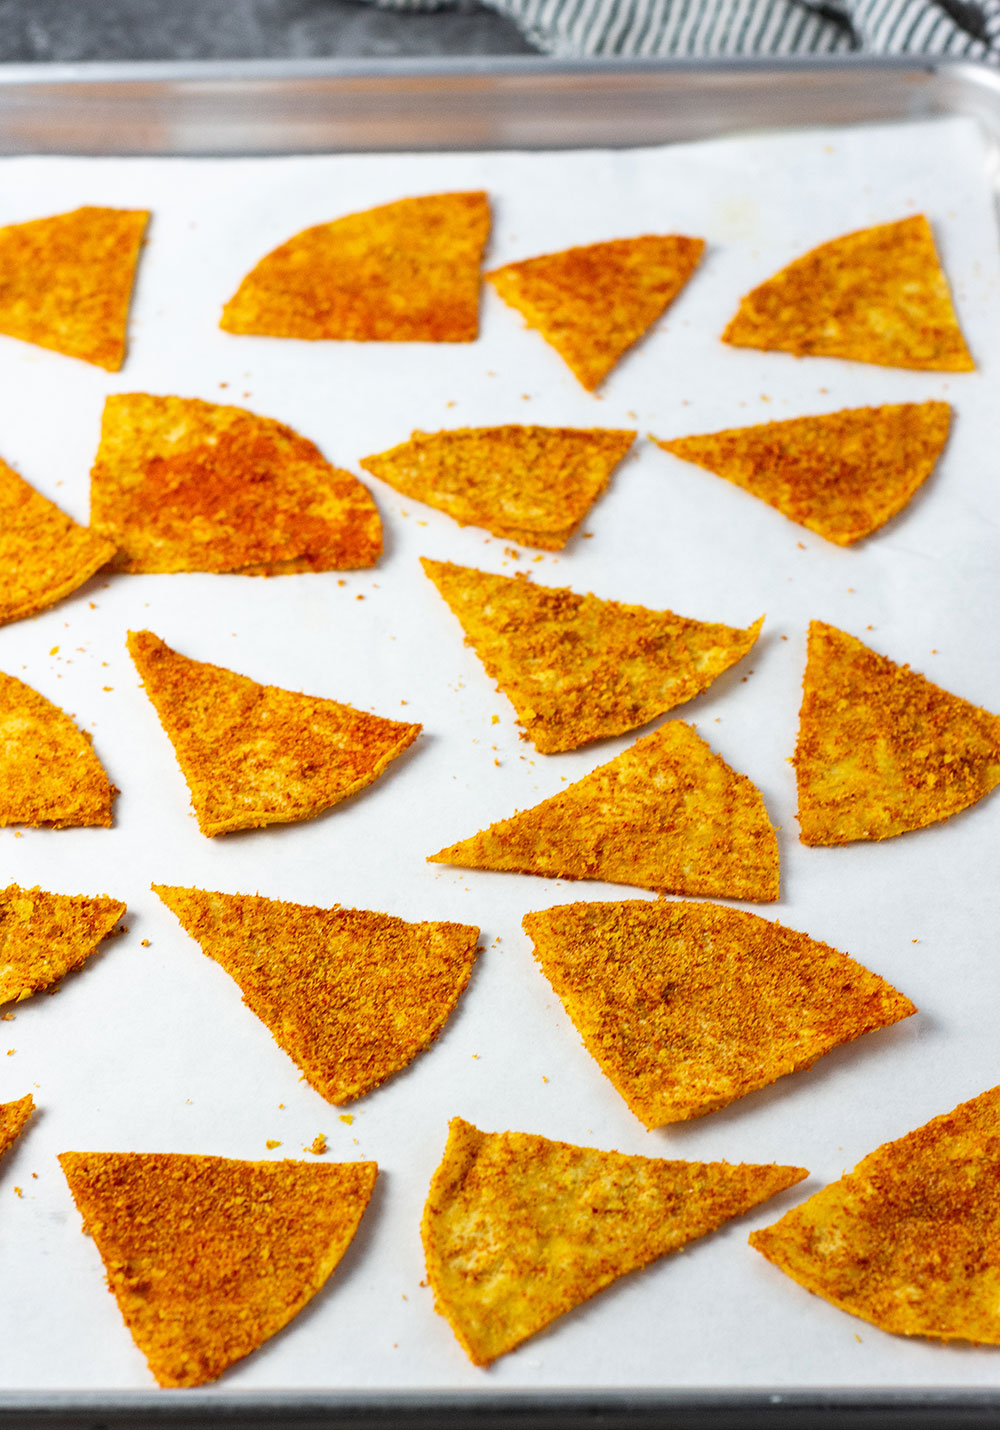 Vegan doritos on a baking sheet